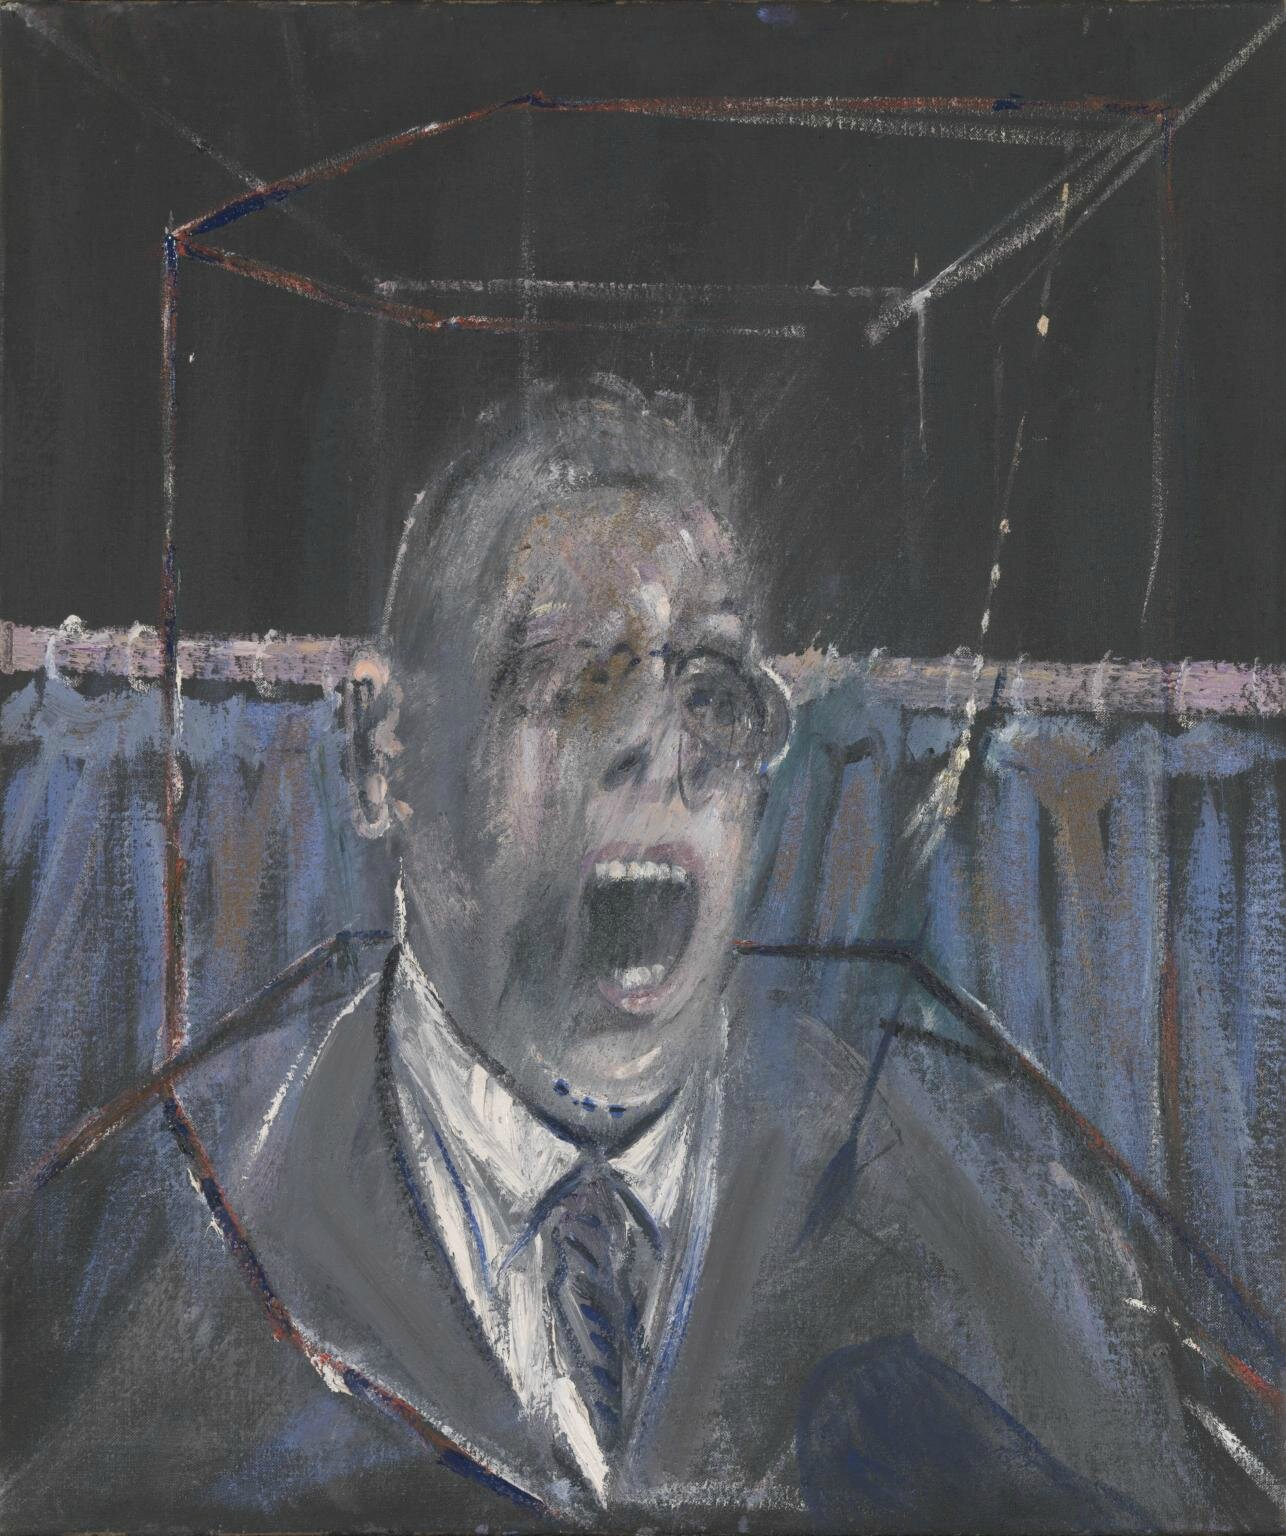 Tate announces first exhibition to survey an unexplored yet significant element of Francis Bacon's work